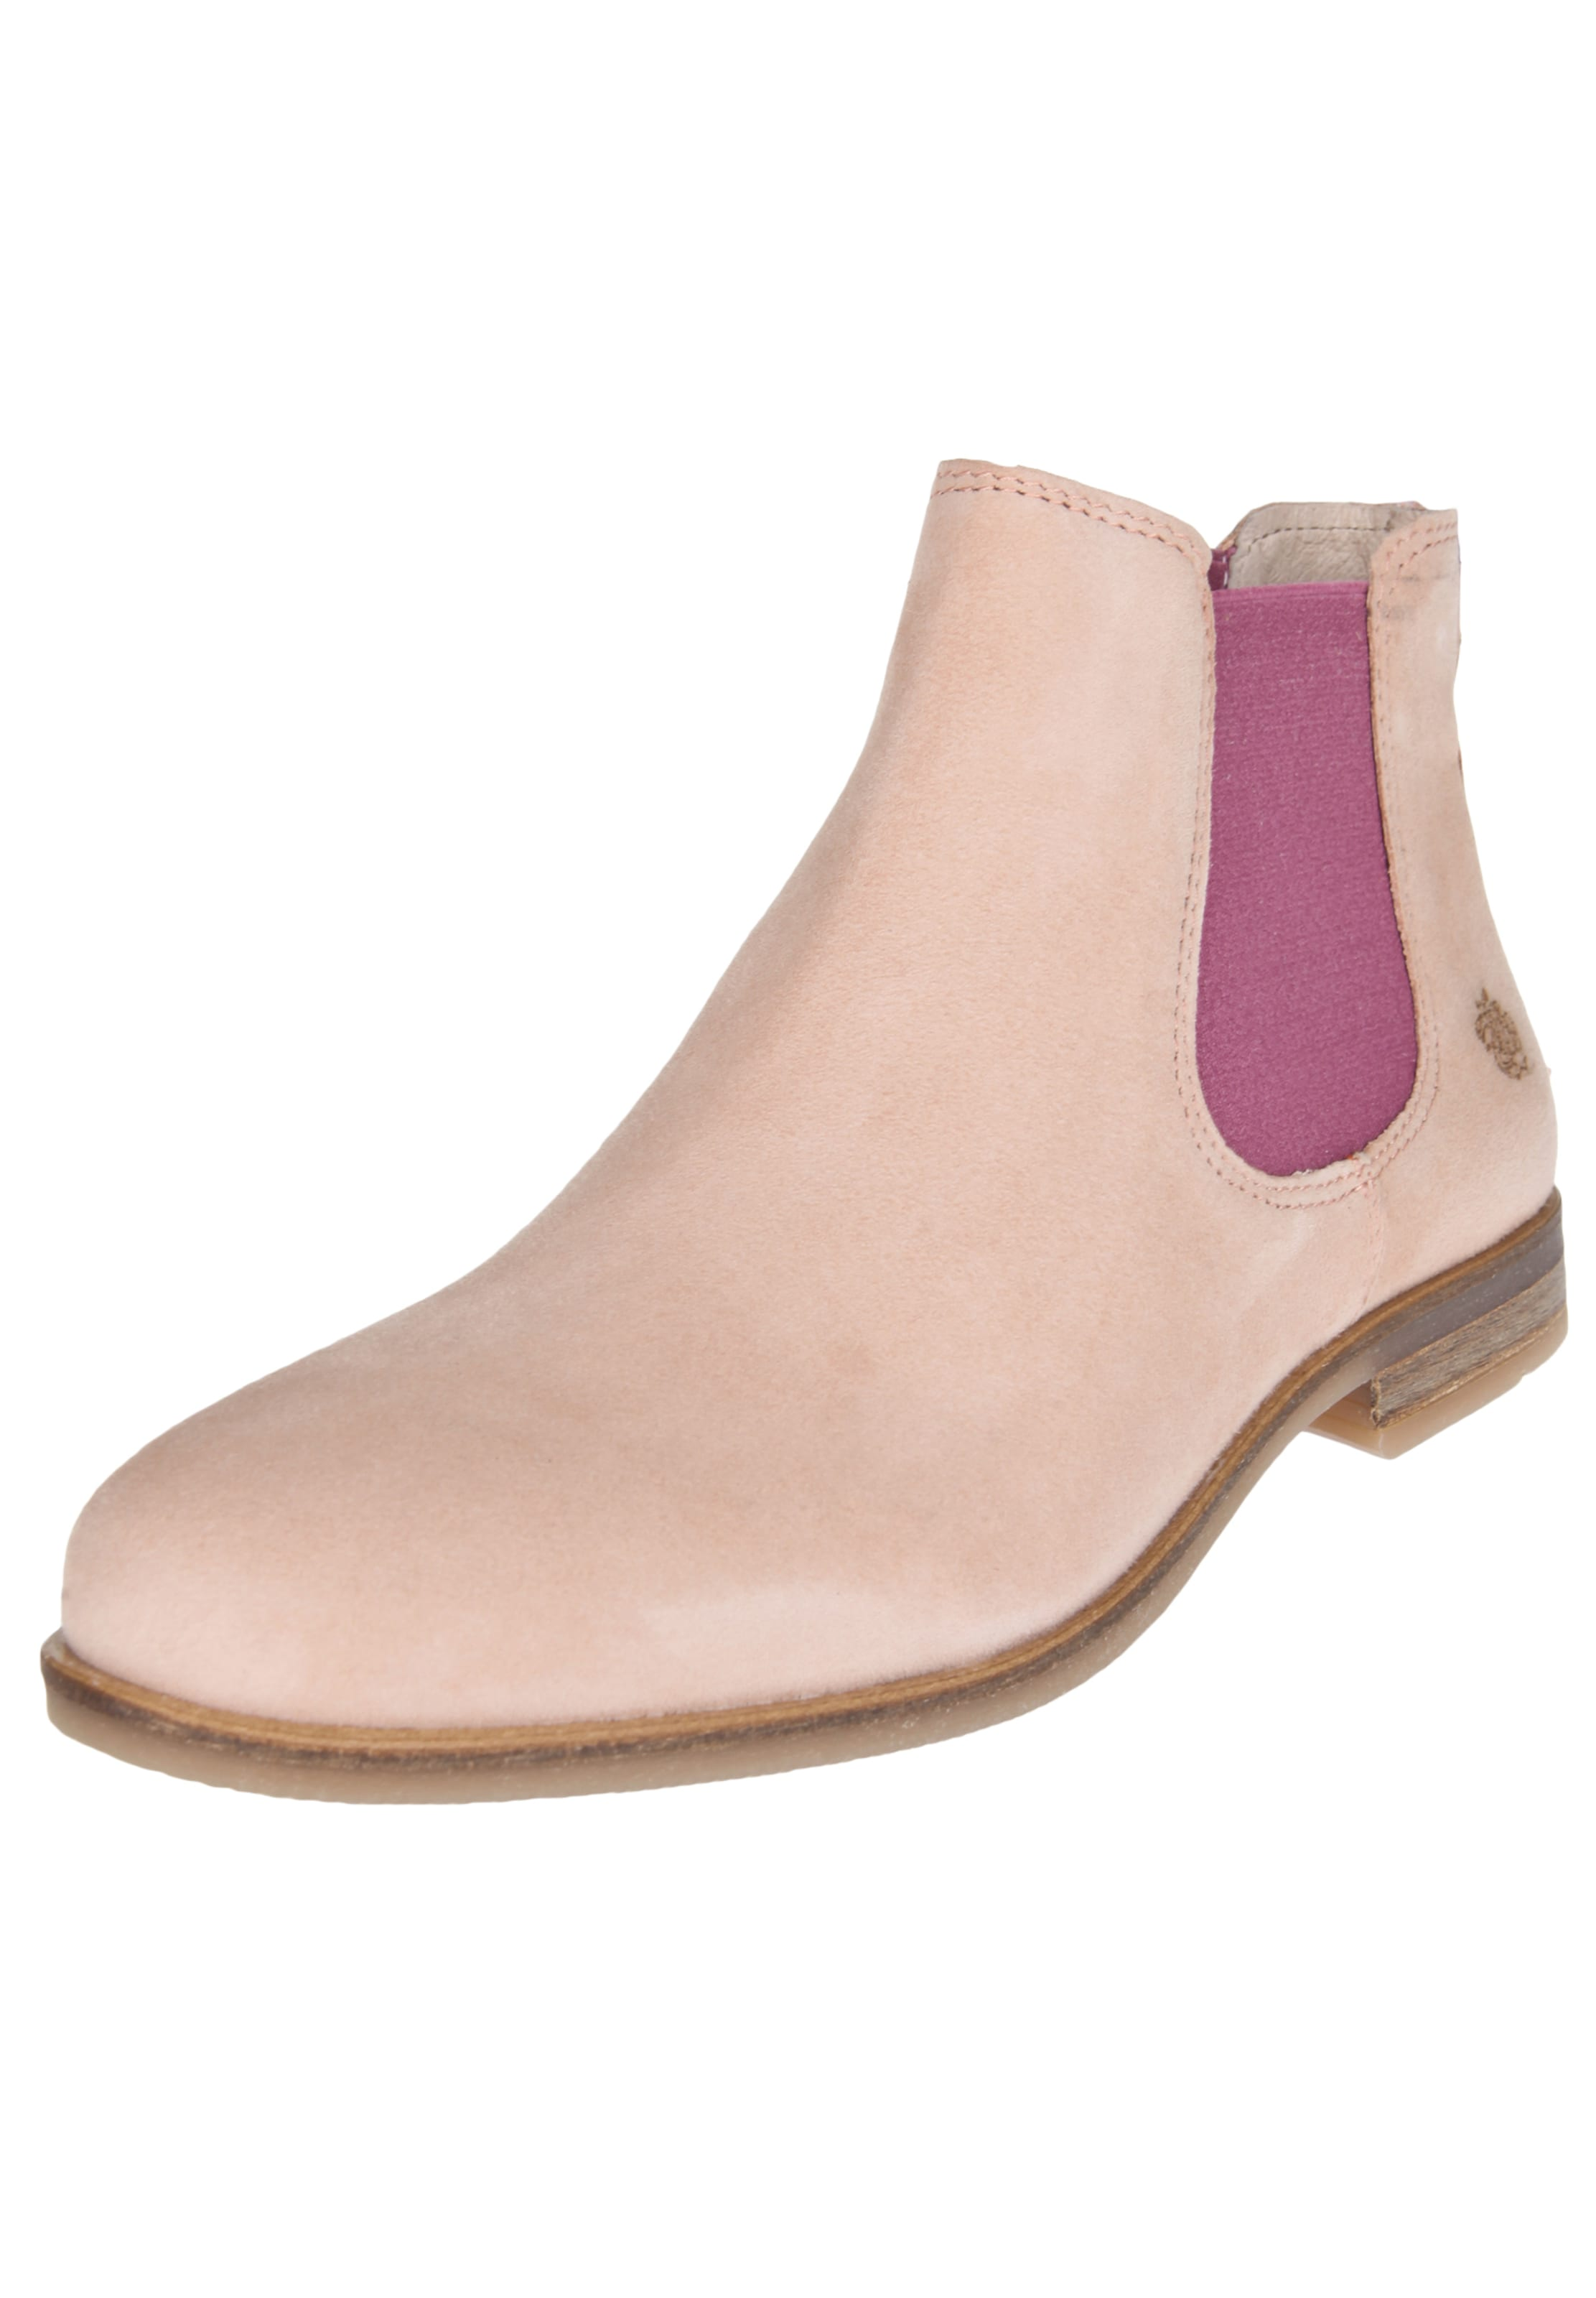 CyclamPastellpink Boots 'manon' Of Chelsea In Apple Eden kO8nw0P